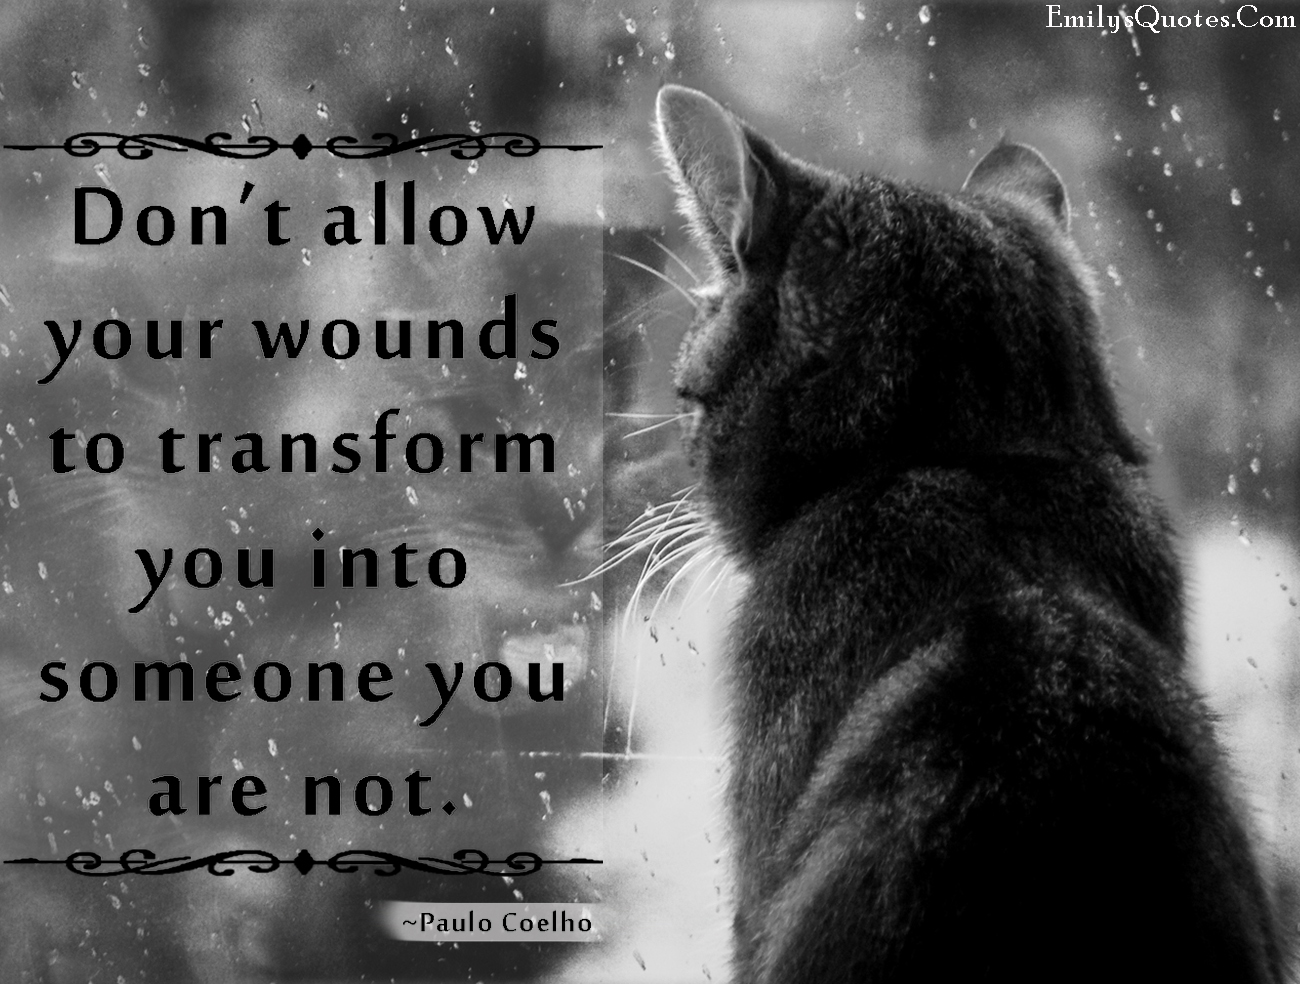 EmilysQuotes.Com - wounds, pain, hurt, change, transform, be yourself, Paulo Coelho